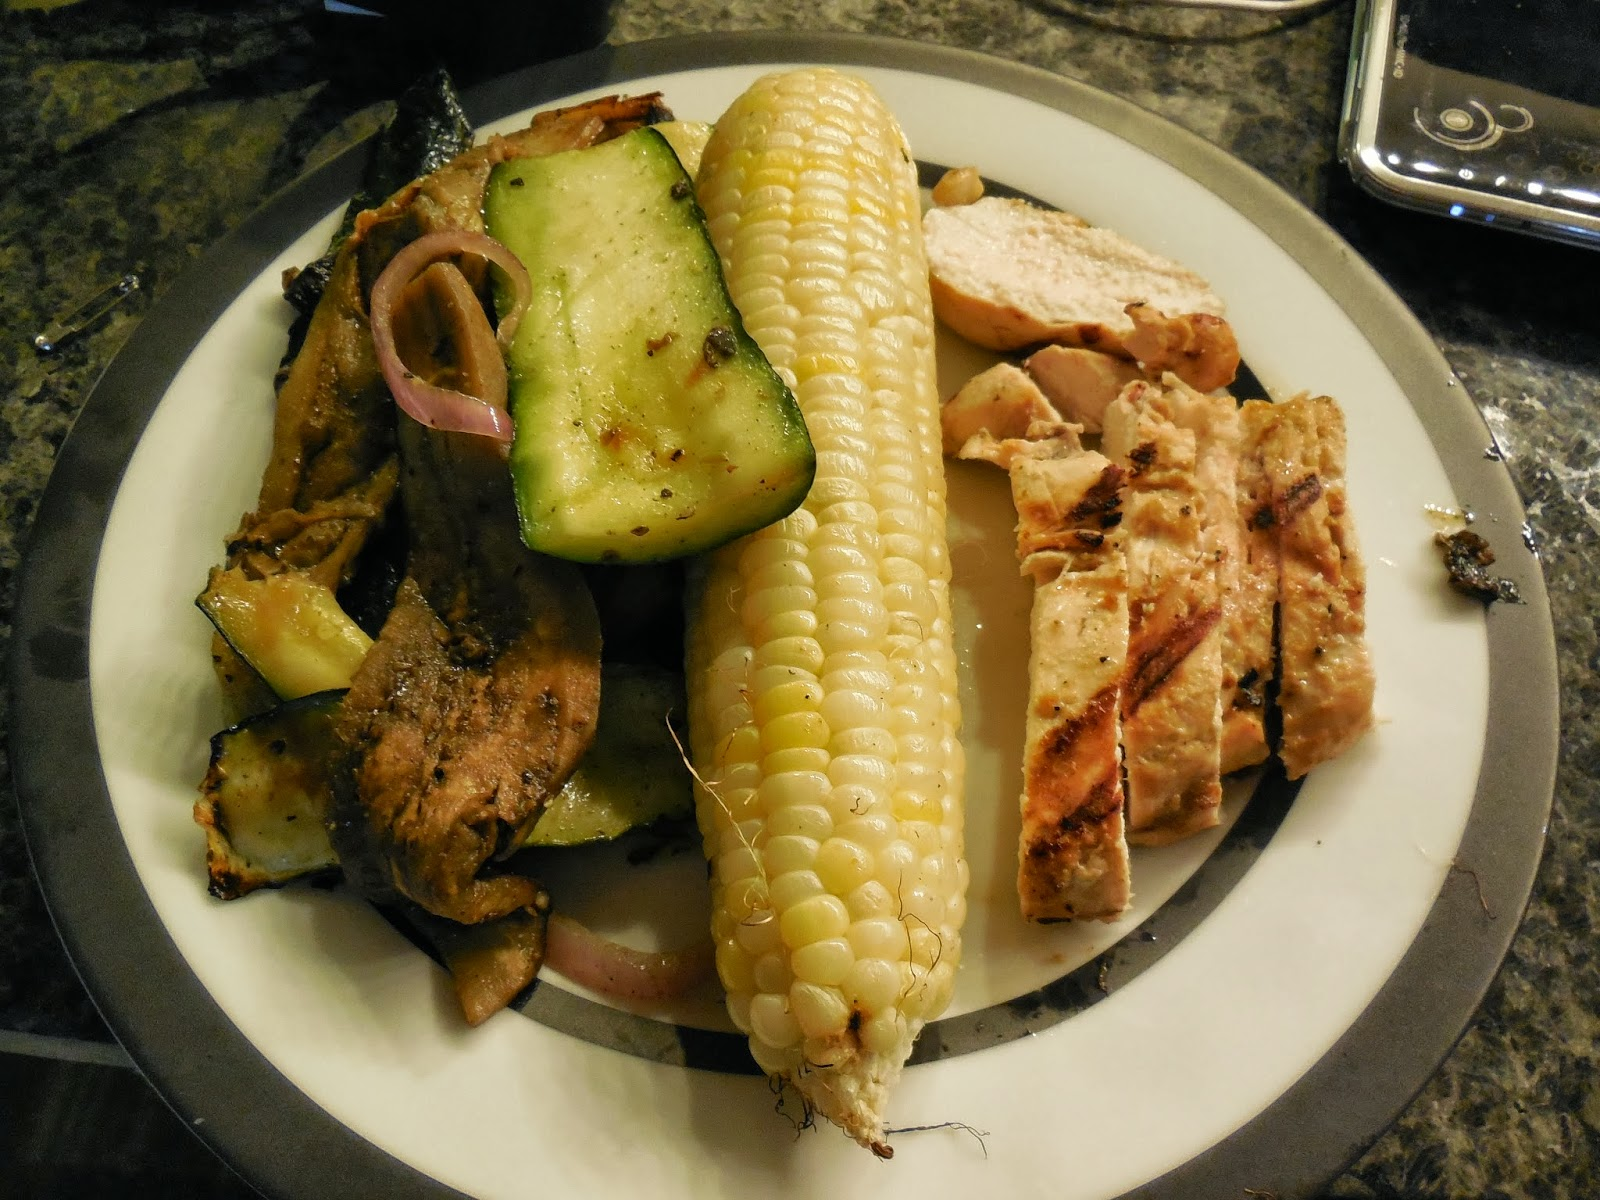 Dinner to die for! Chicken with grilled veggies - corn, zucchini ...